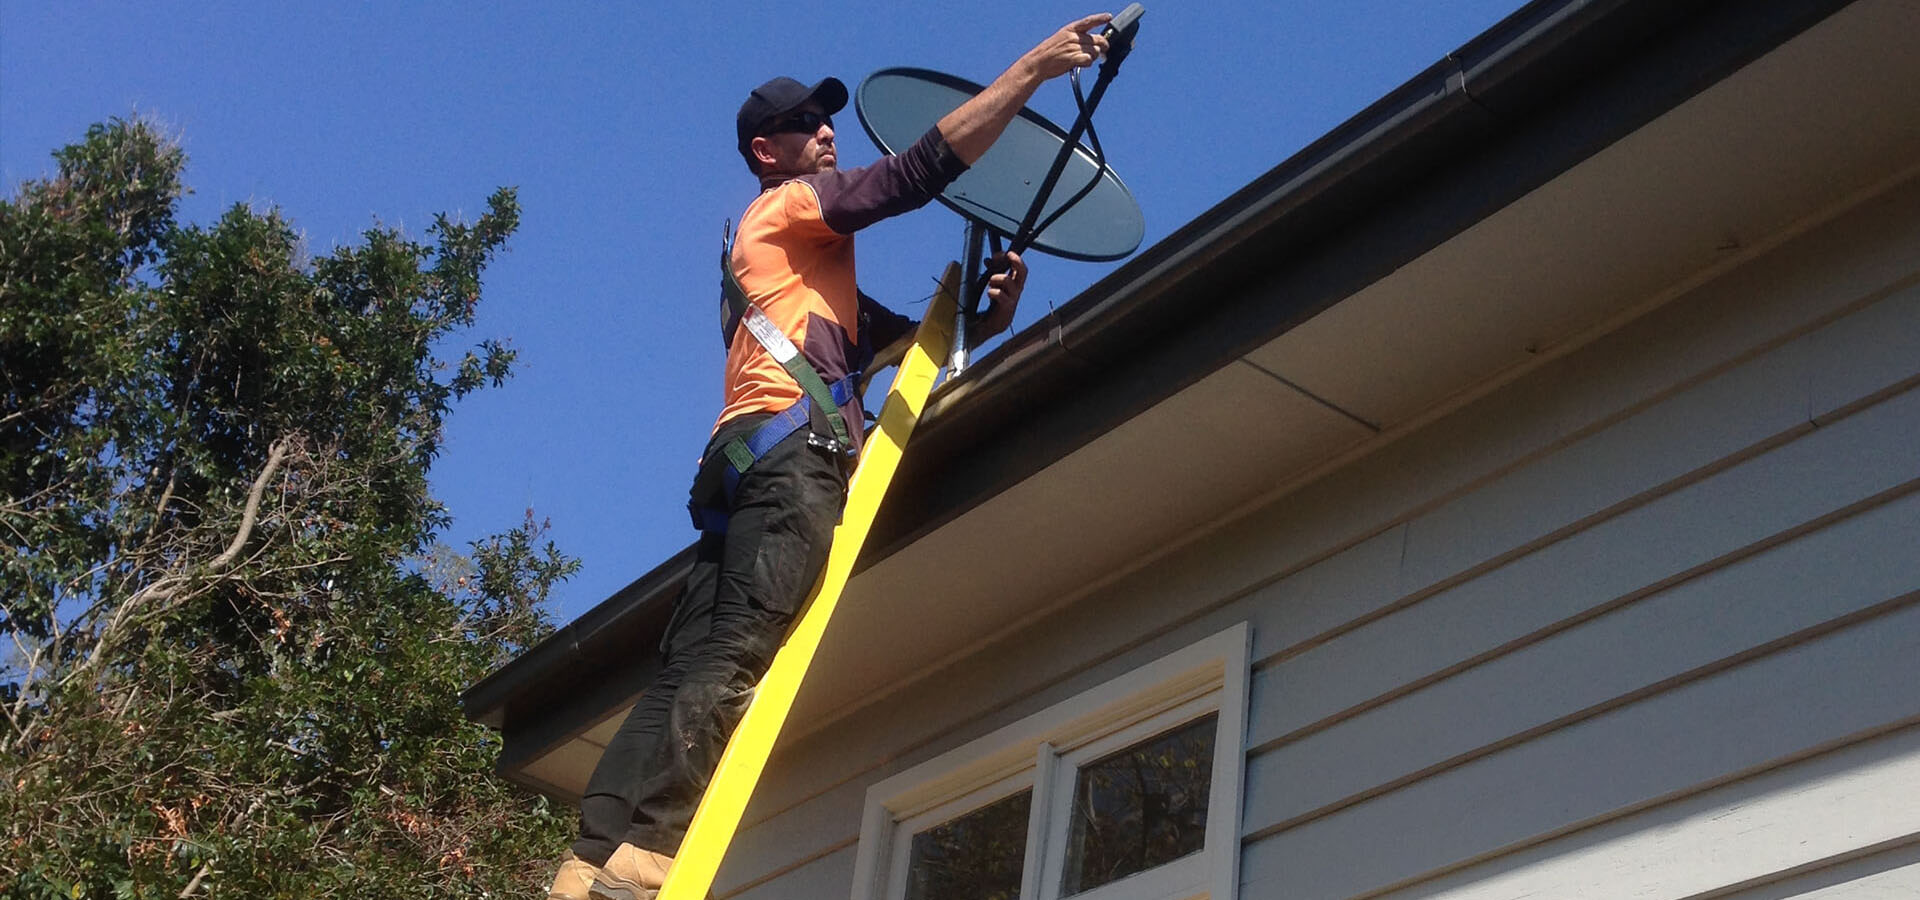 Installer using the Branach fibreglass PowerMaster Single Ladder to climb on a roof.